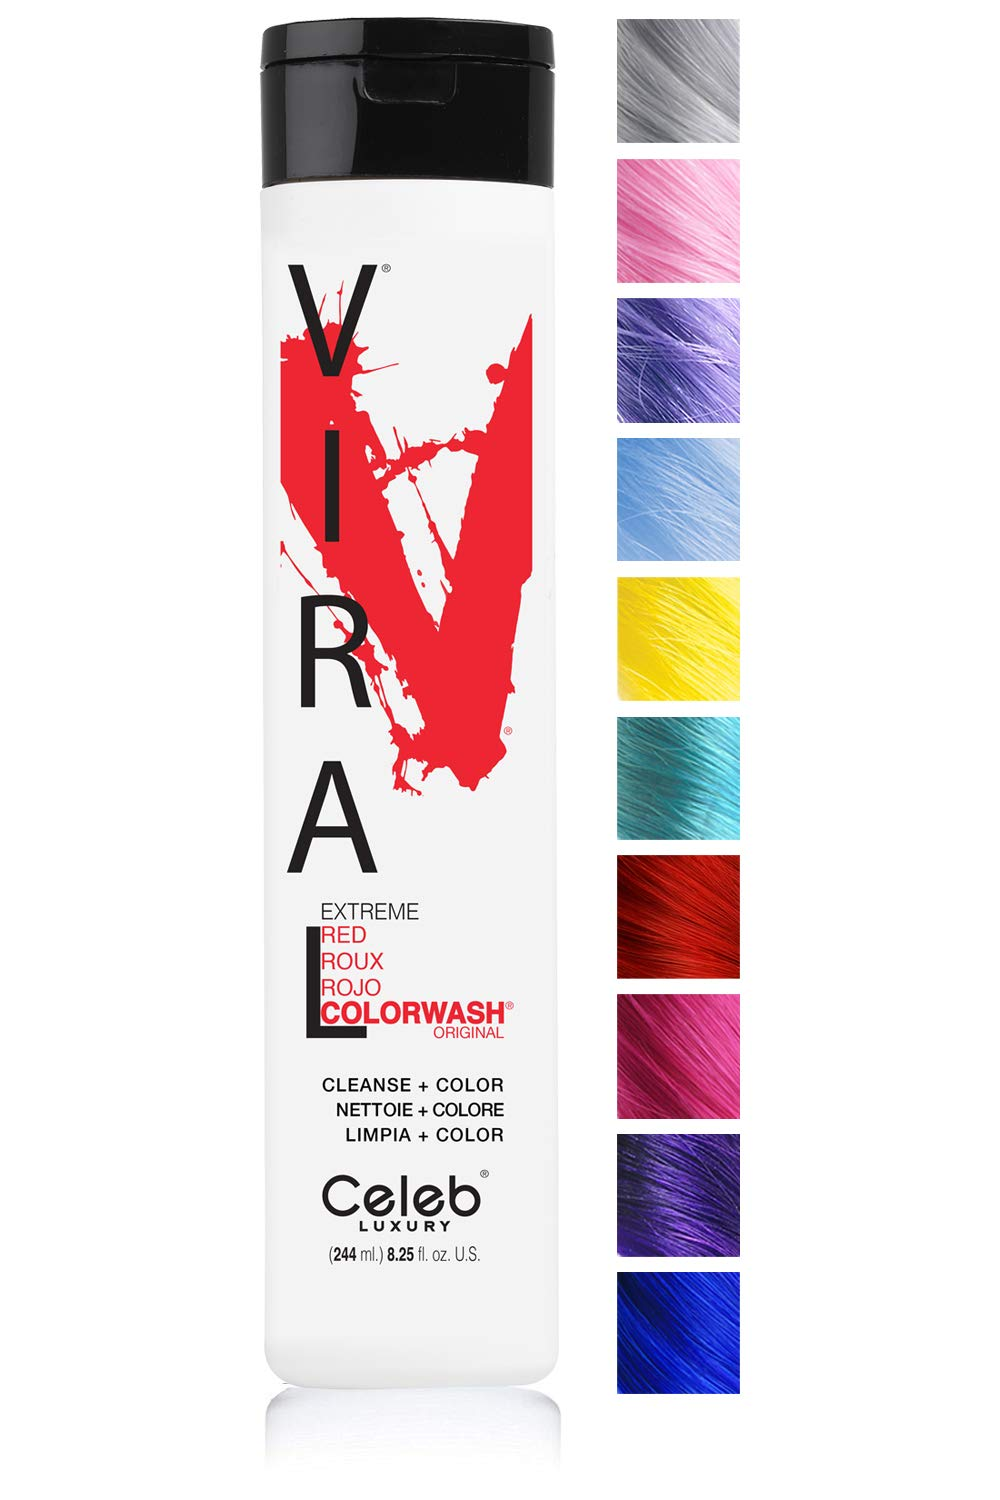 Celeb Luxury Viral Colorwash: Color Depositing Shampoo Concentrate, Vivid and Pastel Colors, Stops Fade, 1 Quick Wash, Cleanse + Color, Sulfate-Free, Cruelty-Free, 100% Vegan